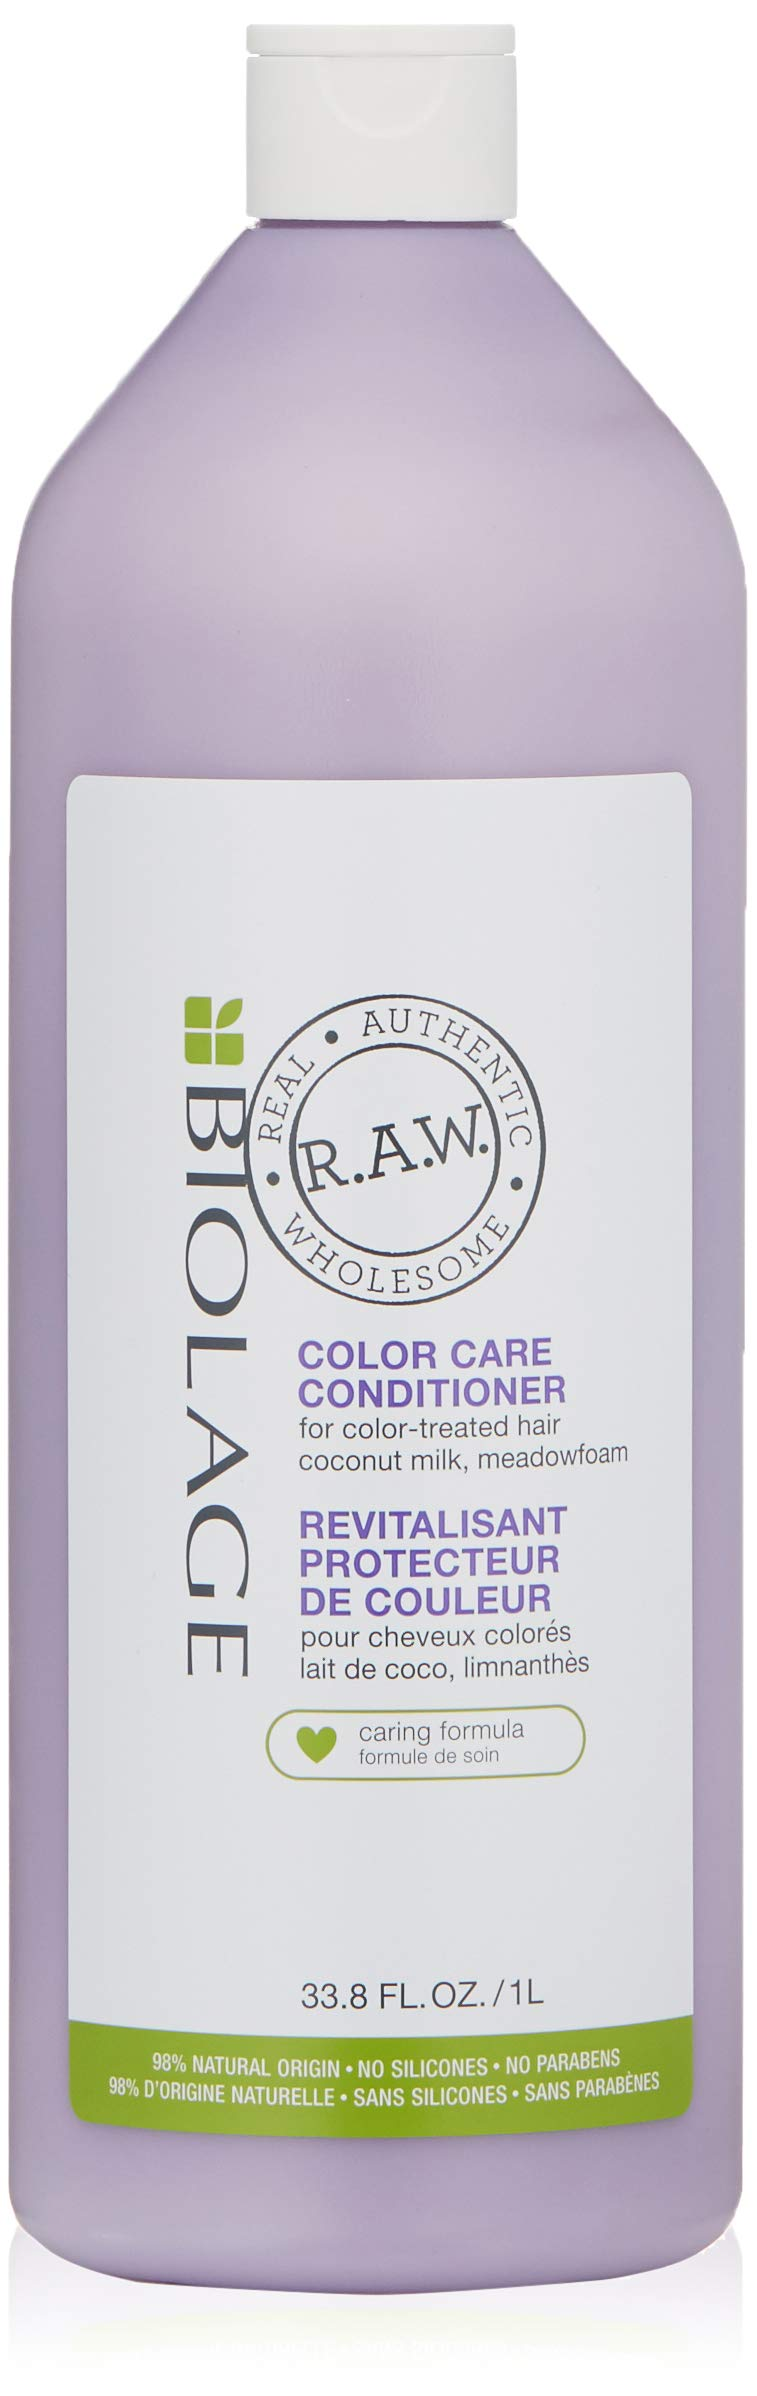 Biolage R.A.W. Color Care Conditioner for Color Treated Hair with Coconut Milk and Meadowfoam by BIOLAGE